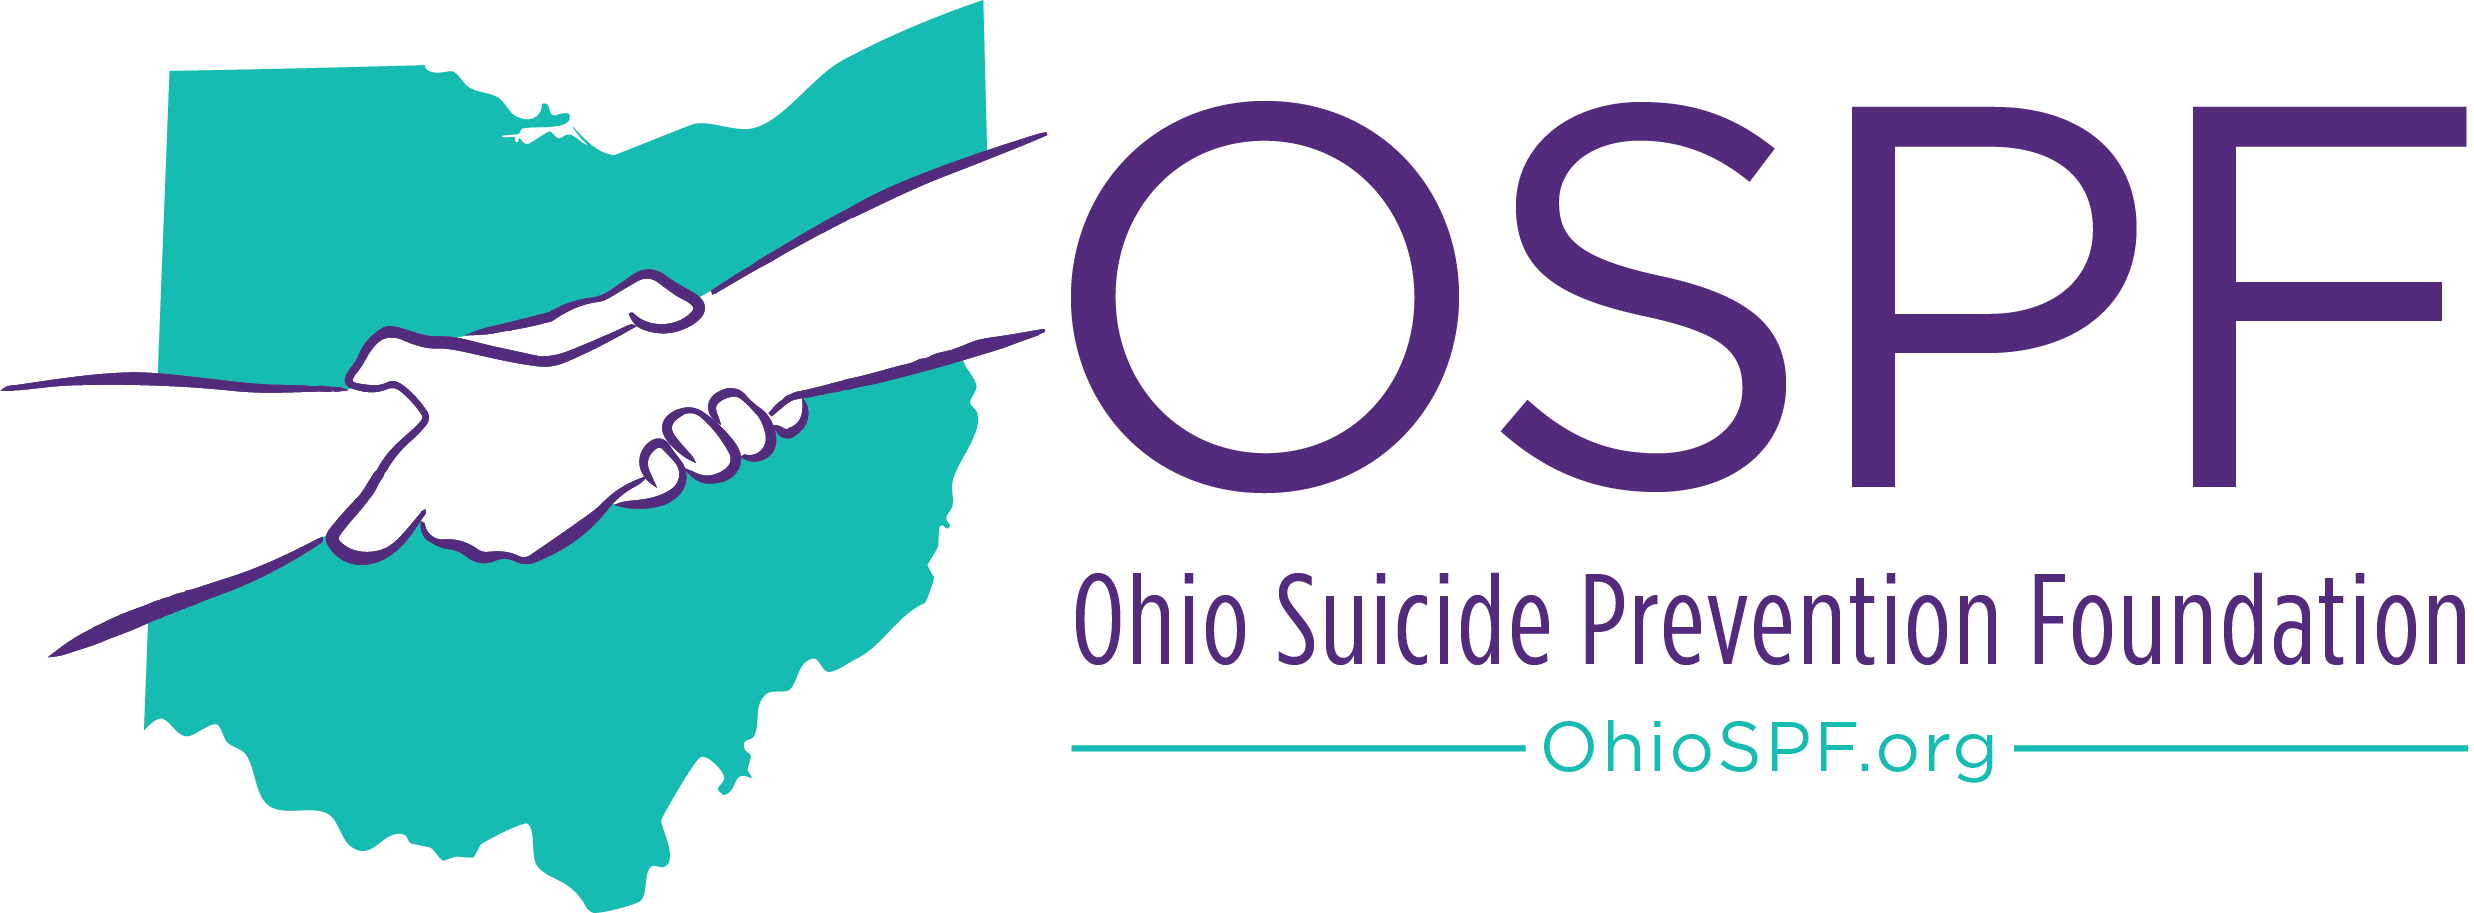 Collaborative Assessment & Management of Suicidality (in Cincinnati)